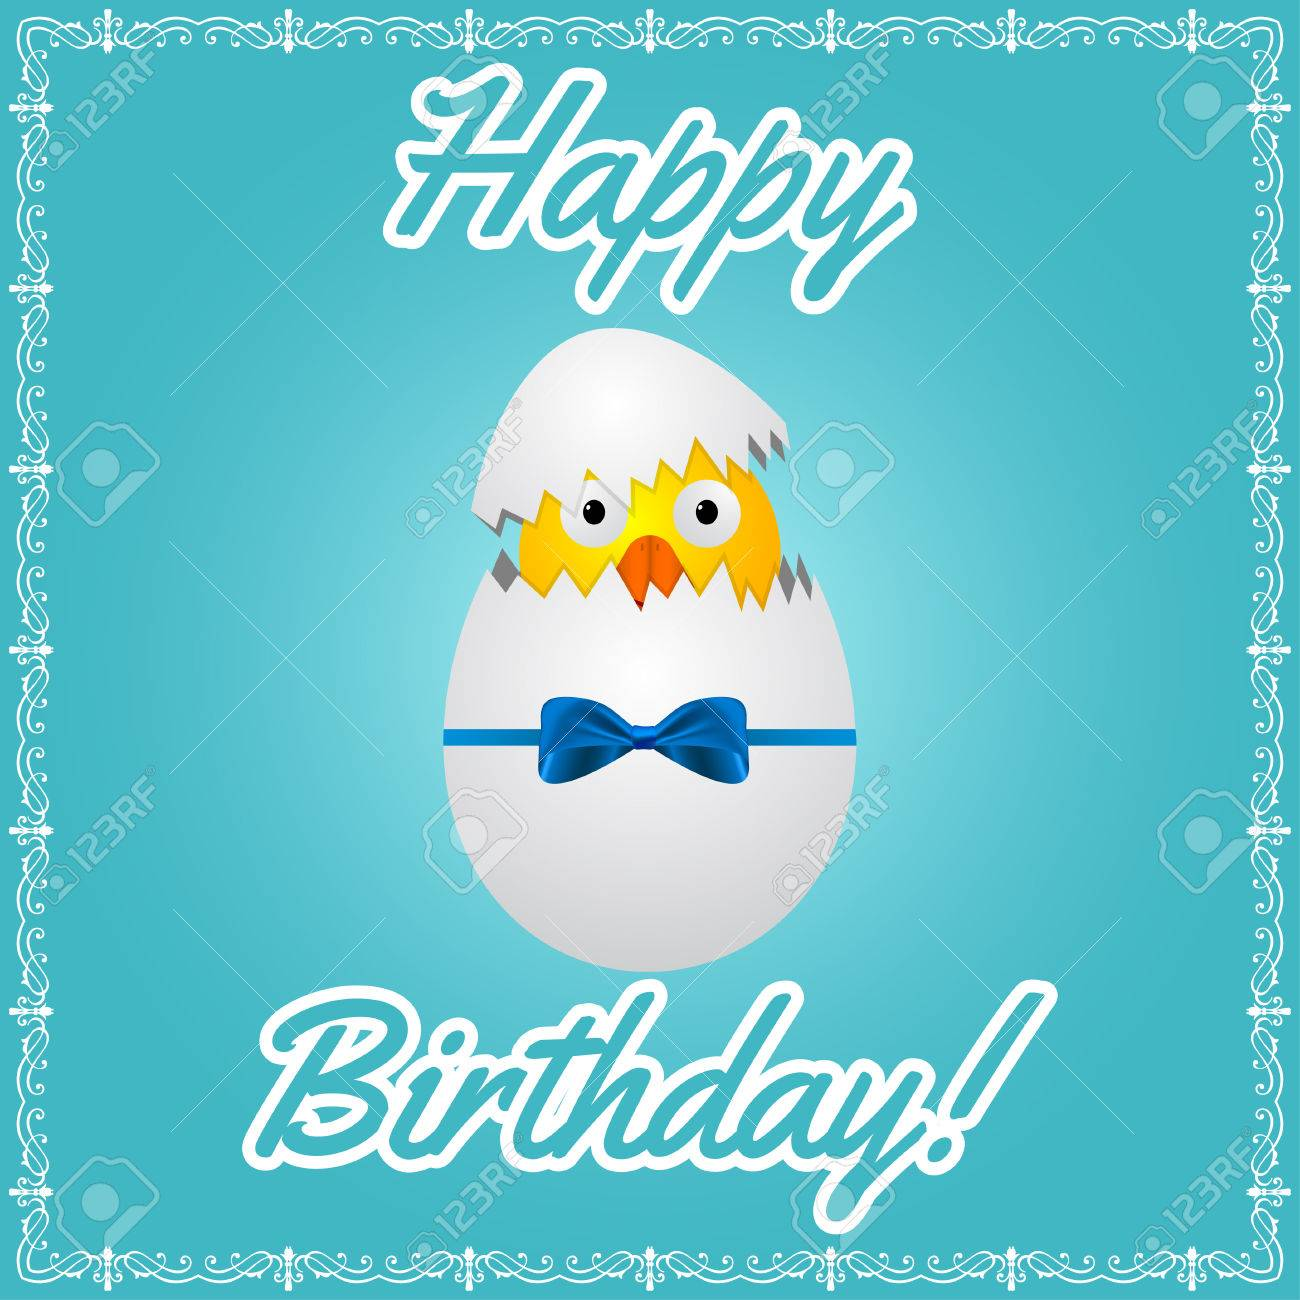 Birthday Greeting Card With Cute Little Chicken In Egg Vector